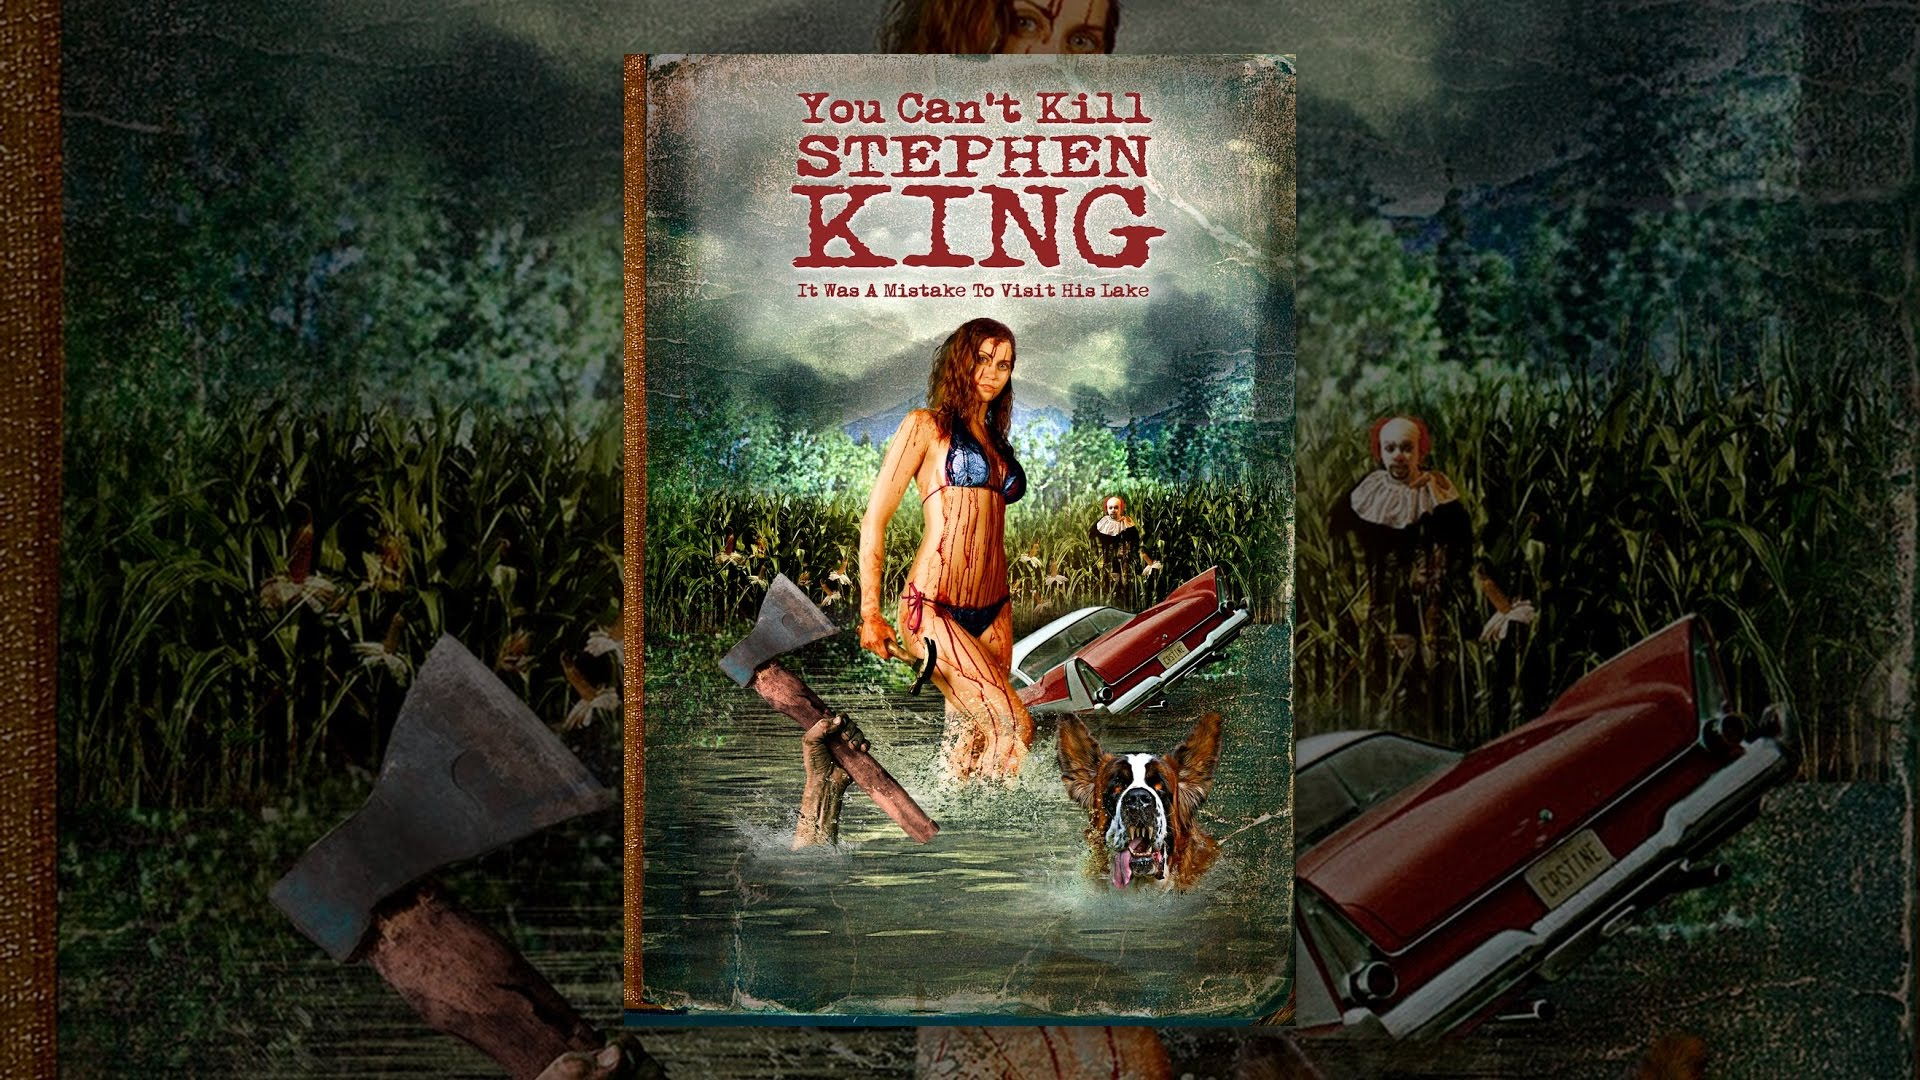 You CanT Kill Stephen King